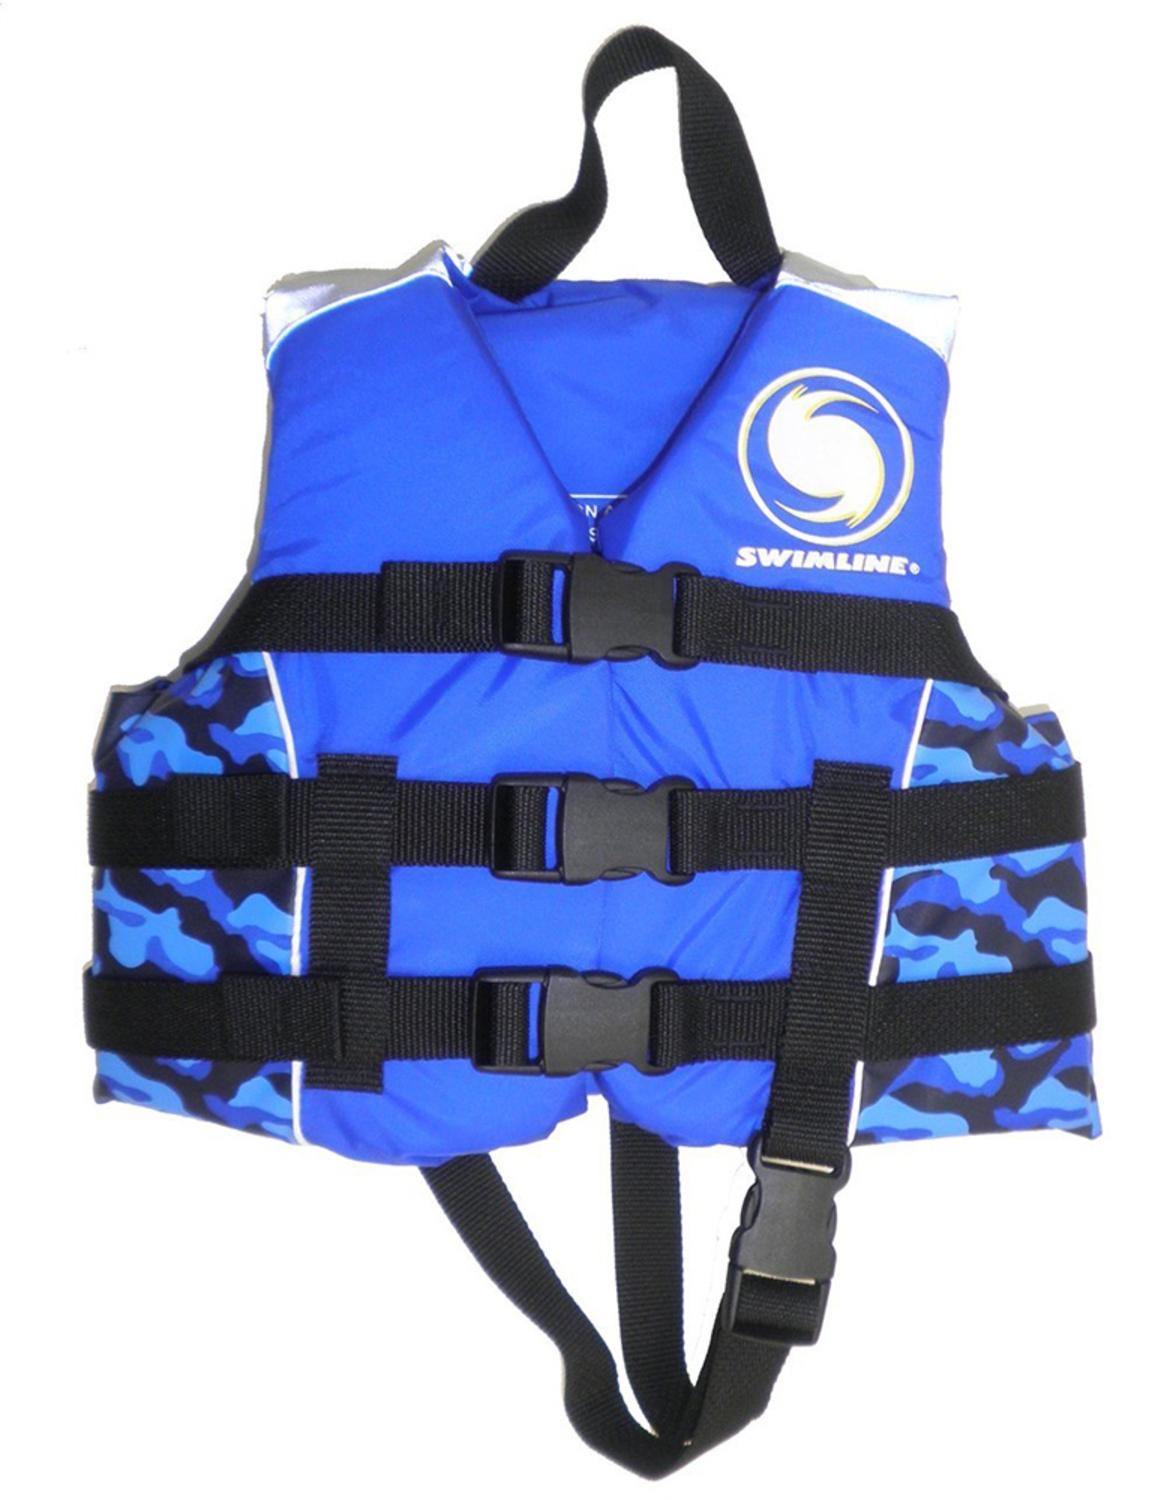 USCG Approved Water or Swimming Pool Cool in Blue Camouflage Child Life Vest for Boys Up to 50lbs by Swim Central